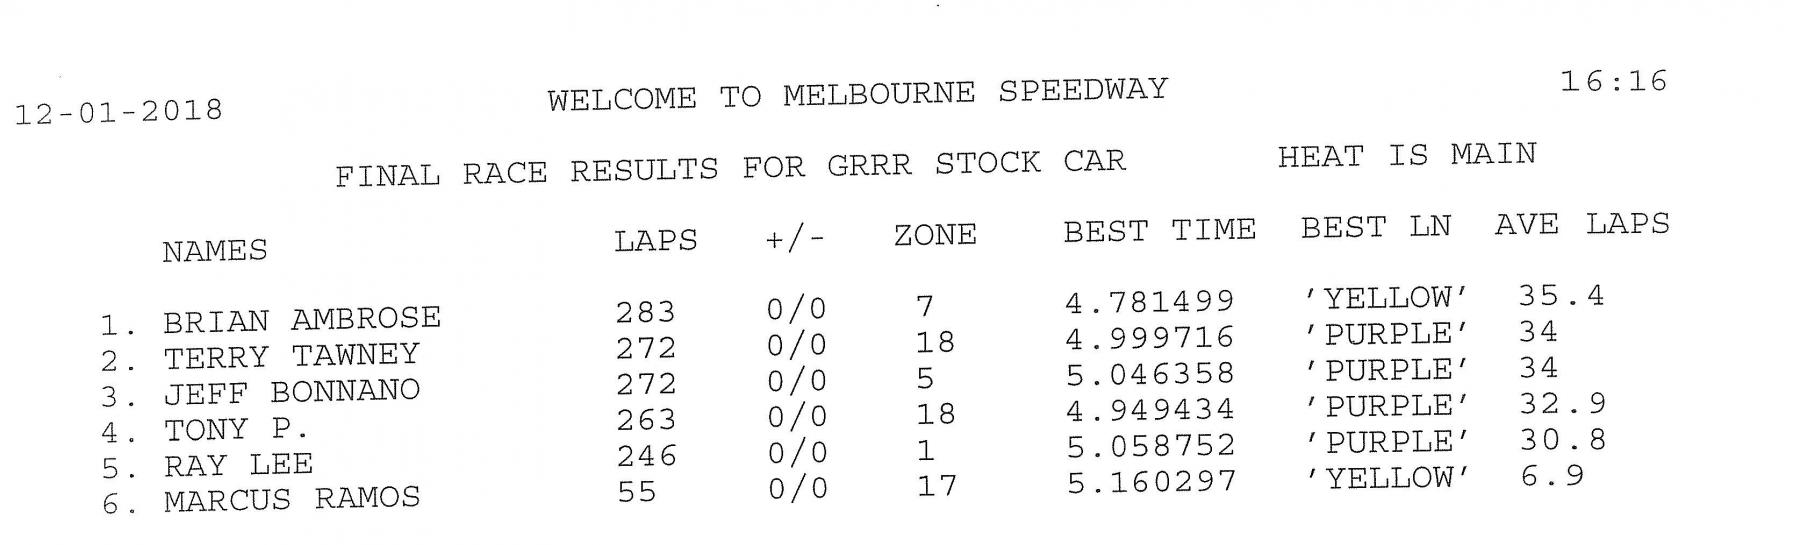 12.1.18 GRRR Stockcar Race 2 Final Results.jpg